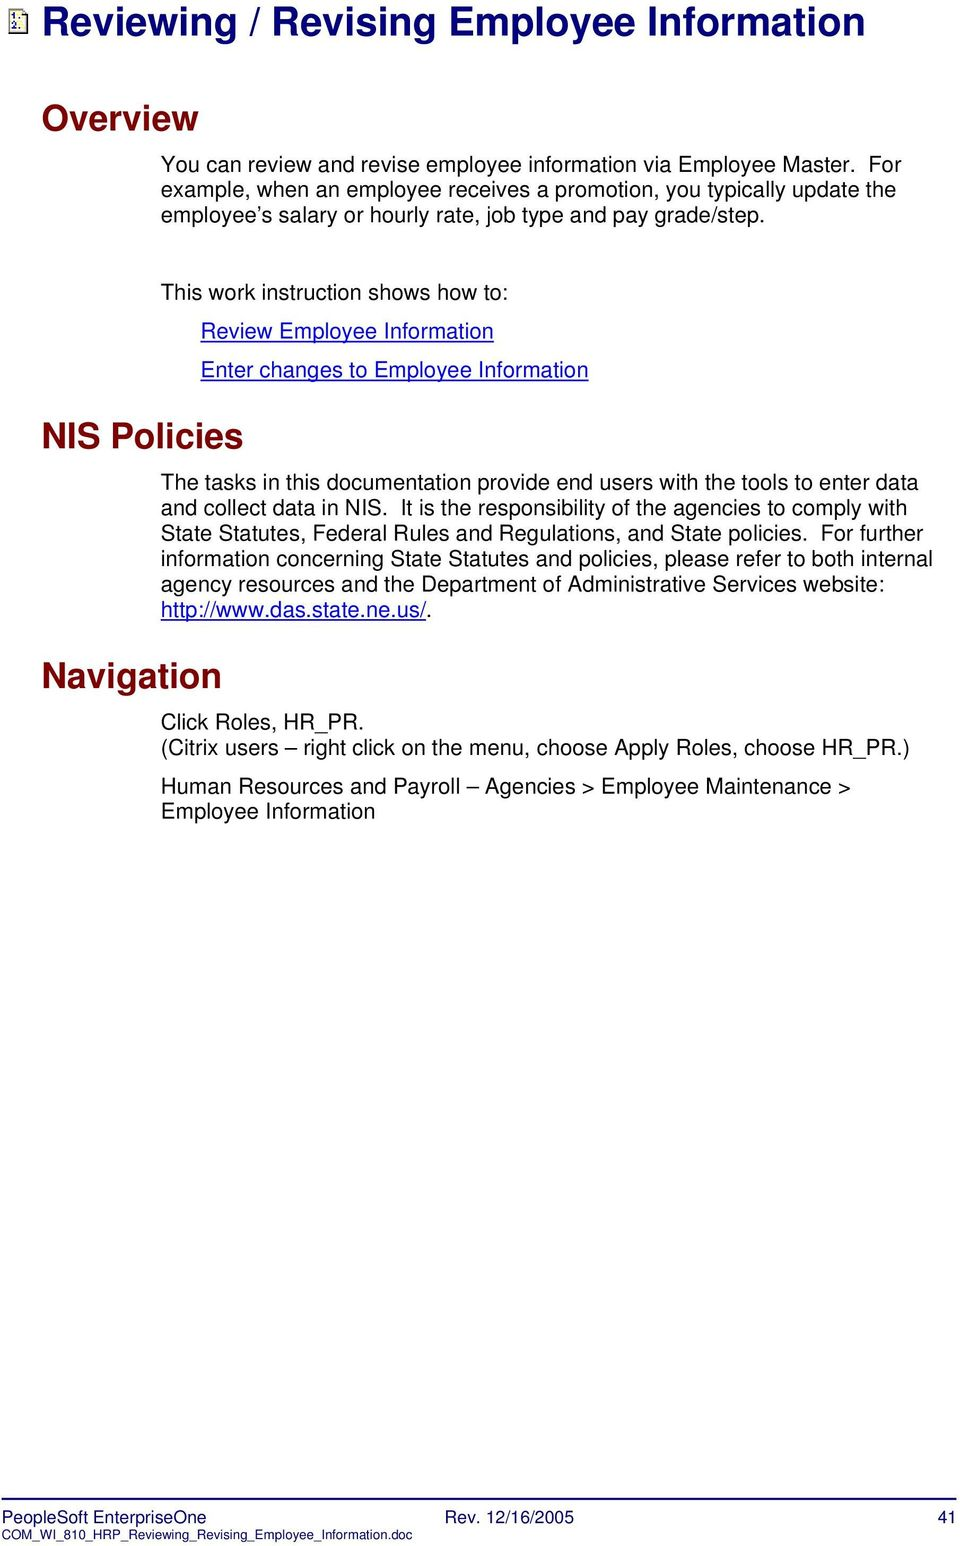 NIS Policies Navigation This work instruction shows how to: Review Employee Information Enter changes to Employee Information The tasks in this documentation provide end users with the tools to enter